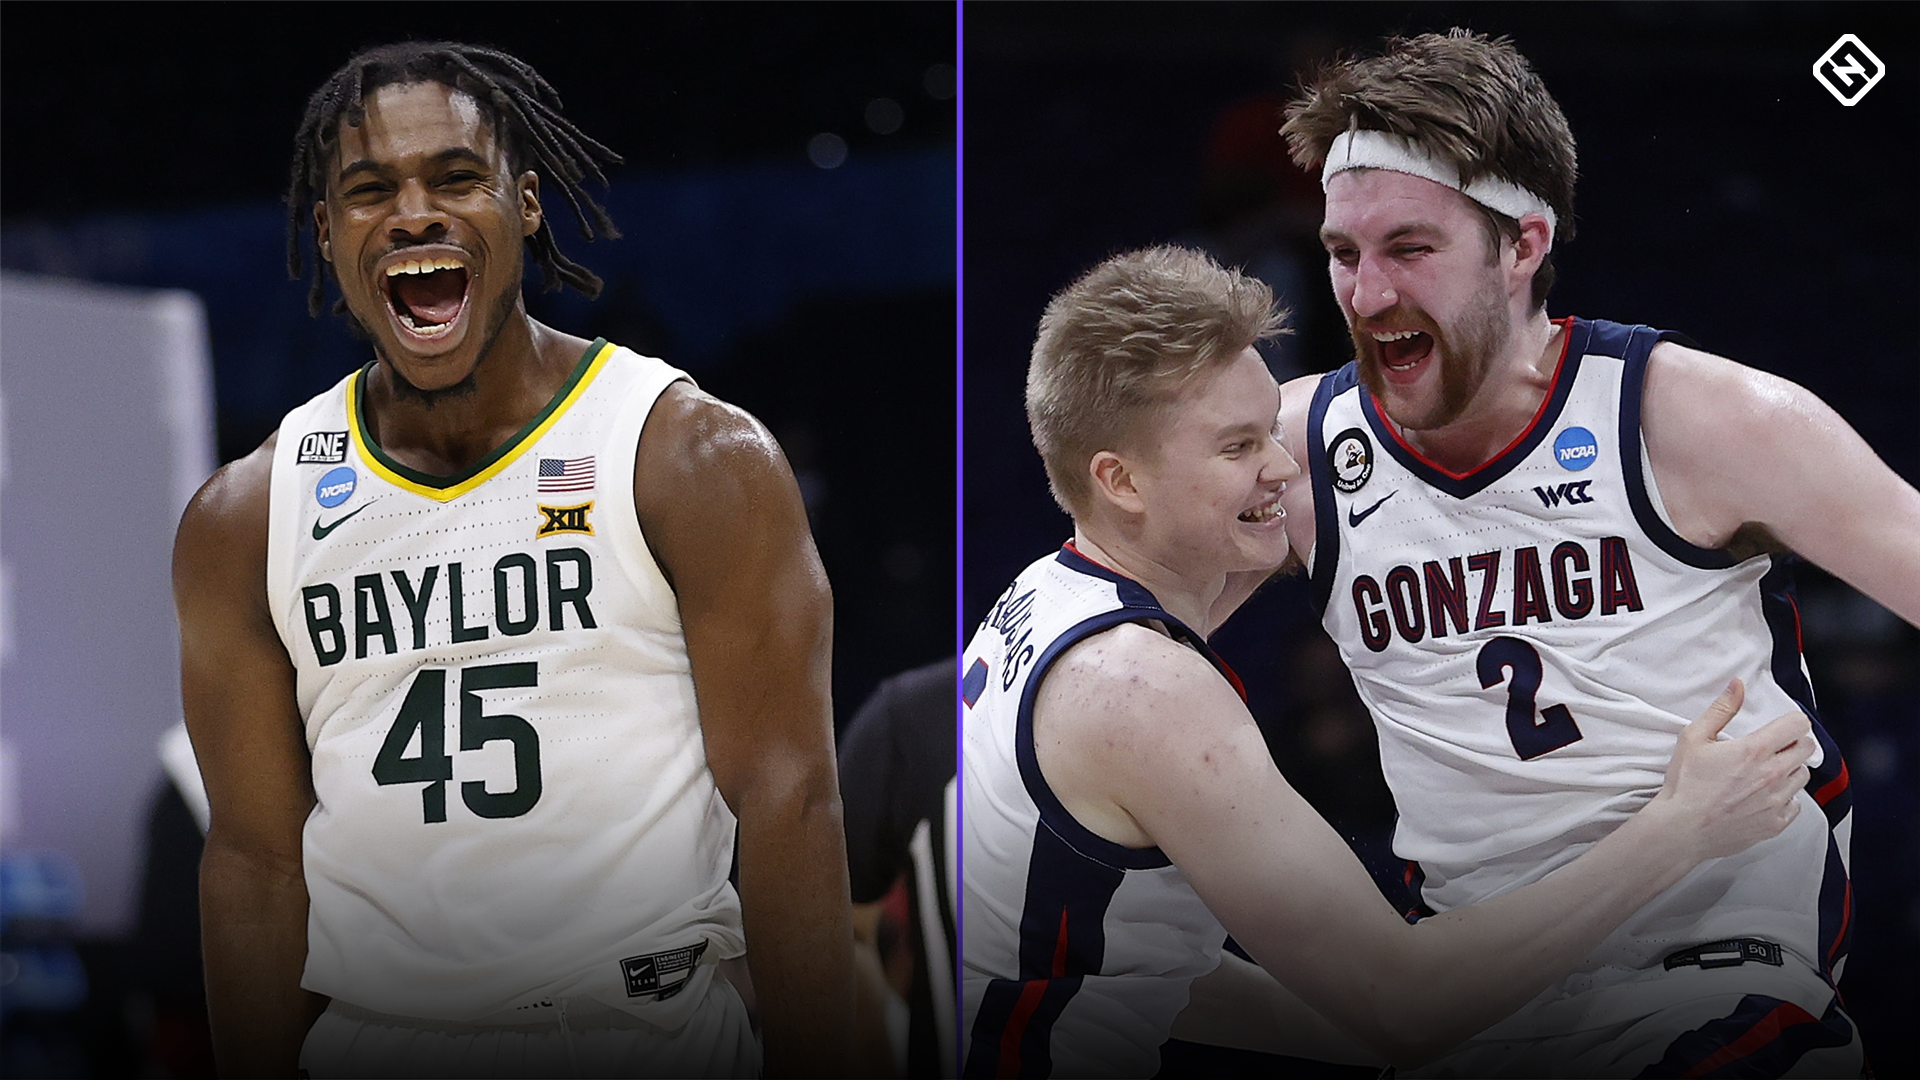 Probability, chances, predictions of the Final Four: Baylor leaves Houston, Gonzaga beats UCLA to win 2021 title